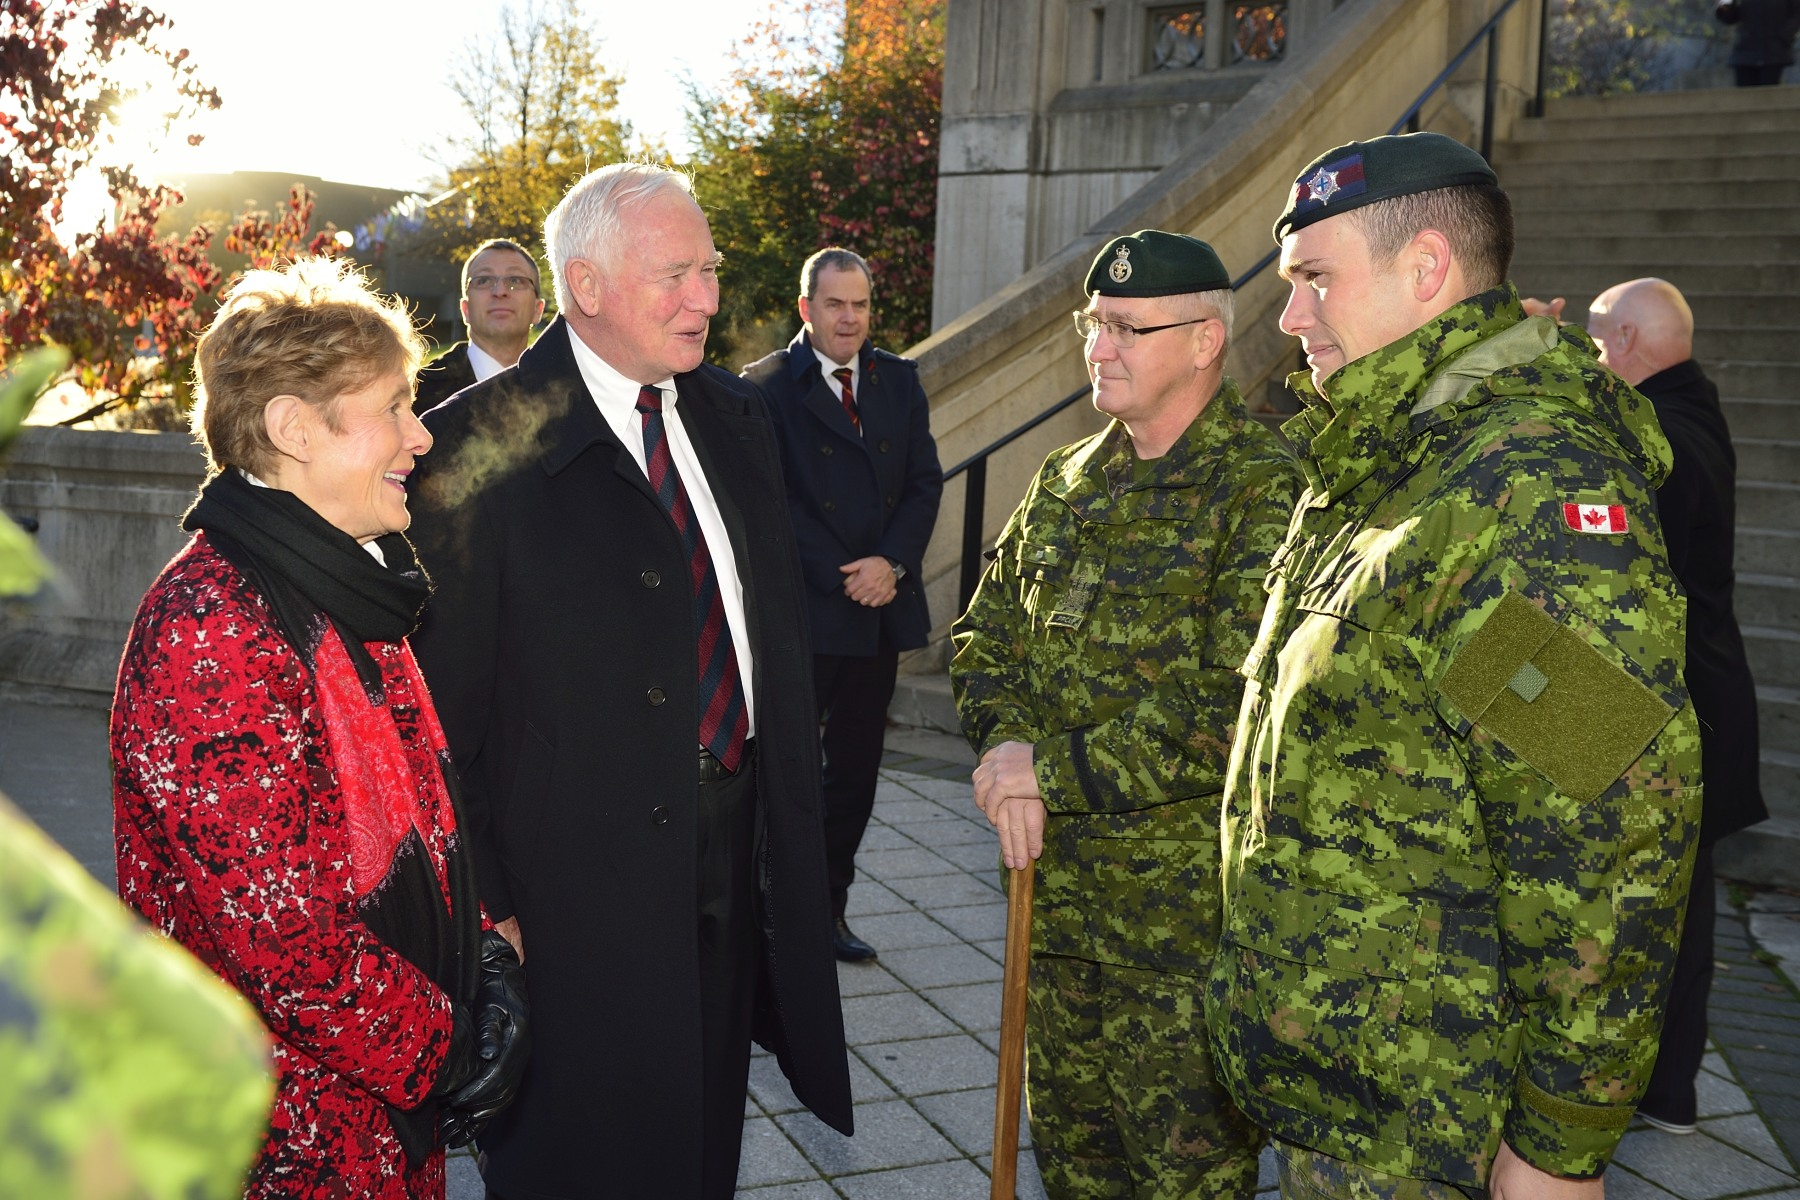 Upon their arrival at Plaza Barracks, Their Excellencies the Right Honourable David Johnston, Governor General and Commander-in-Chief of Canada, met with Padre Andrew Love (left) and	Colour Sergeant Tim Perry, Office of Primary Interest for National Sentry Program (right).